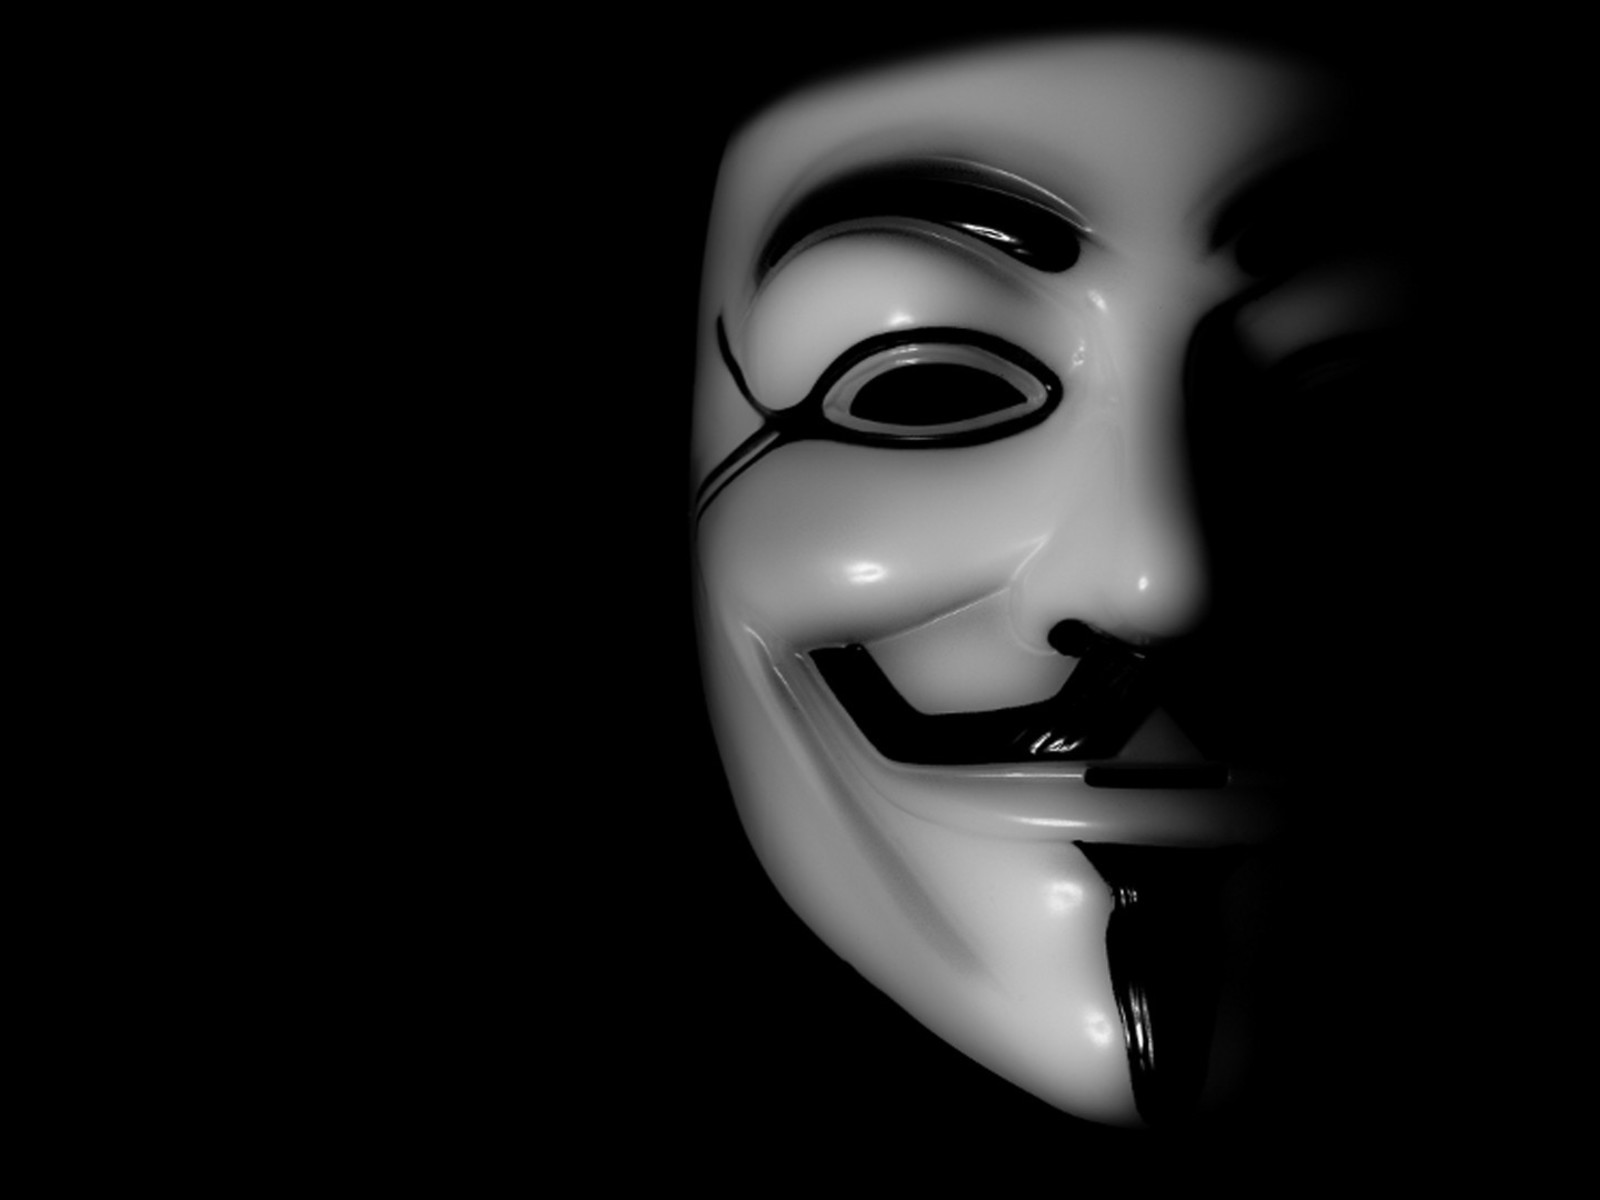 Anonymous Expect Us Guy Fawkes Black Legion Wallpaper Allwallpaper